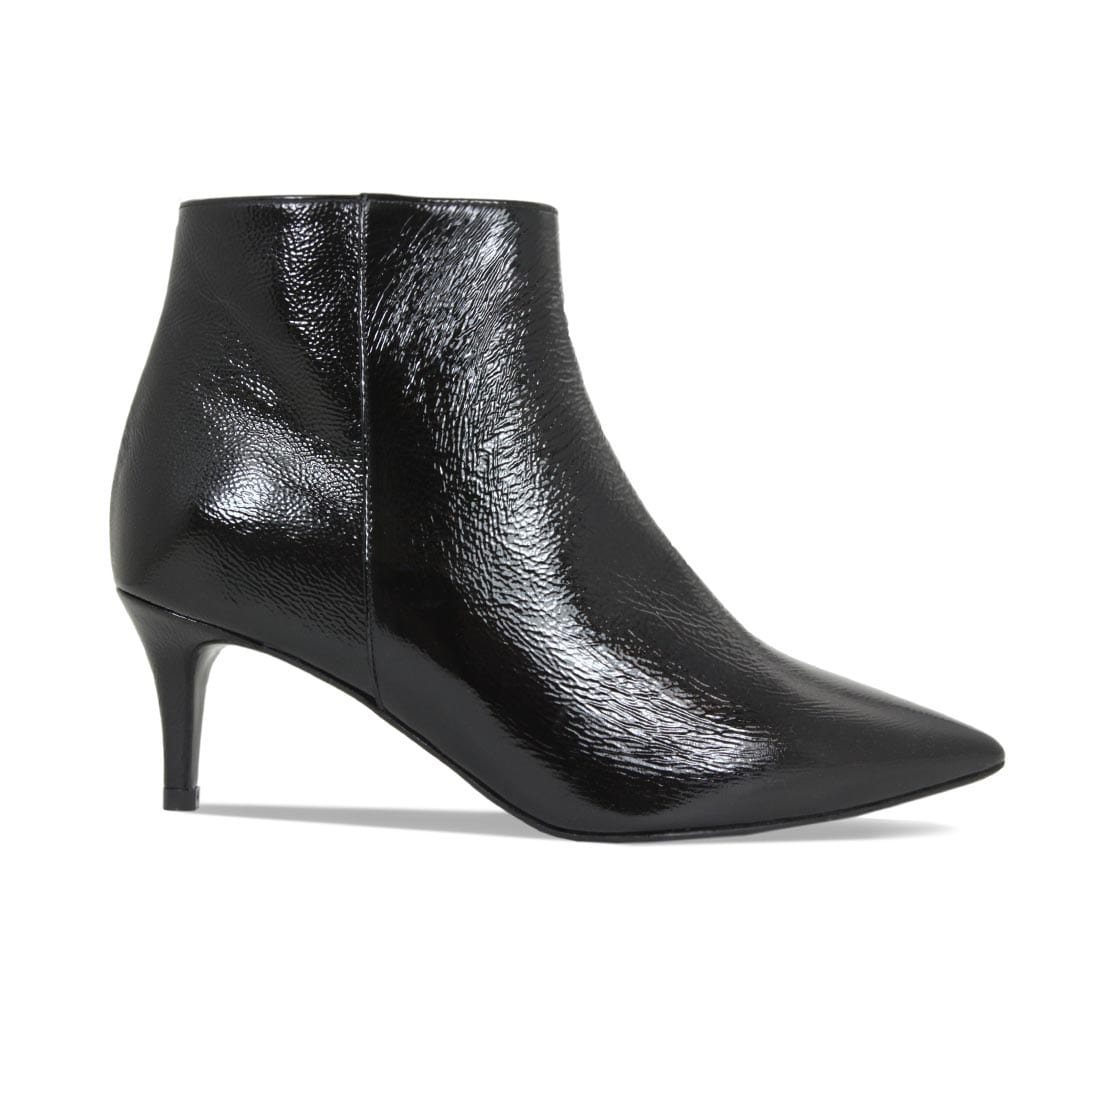 Black Patent Leather Slim Heel Ankle Boots